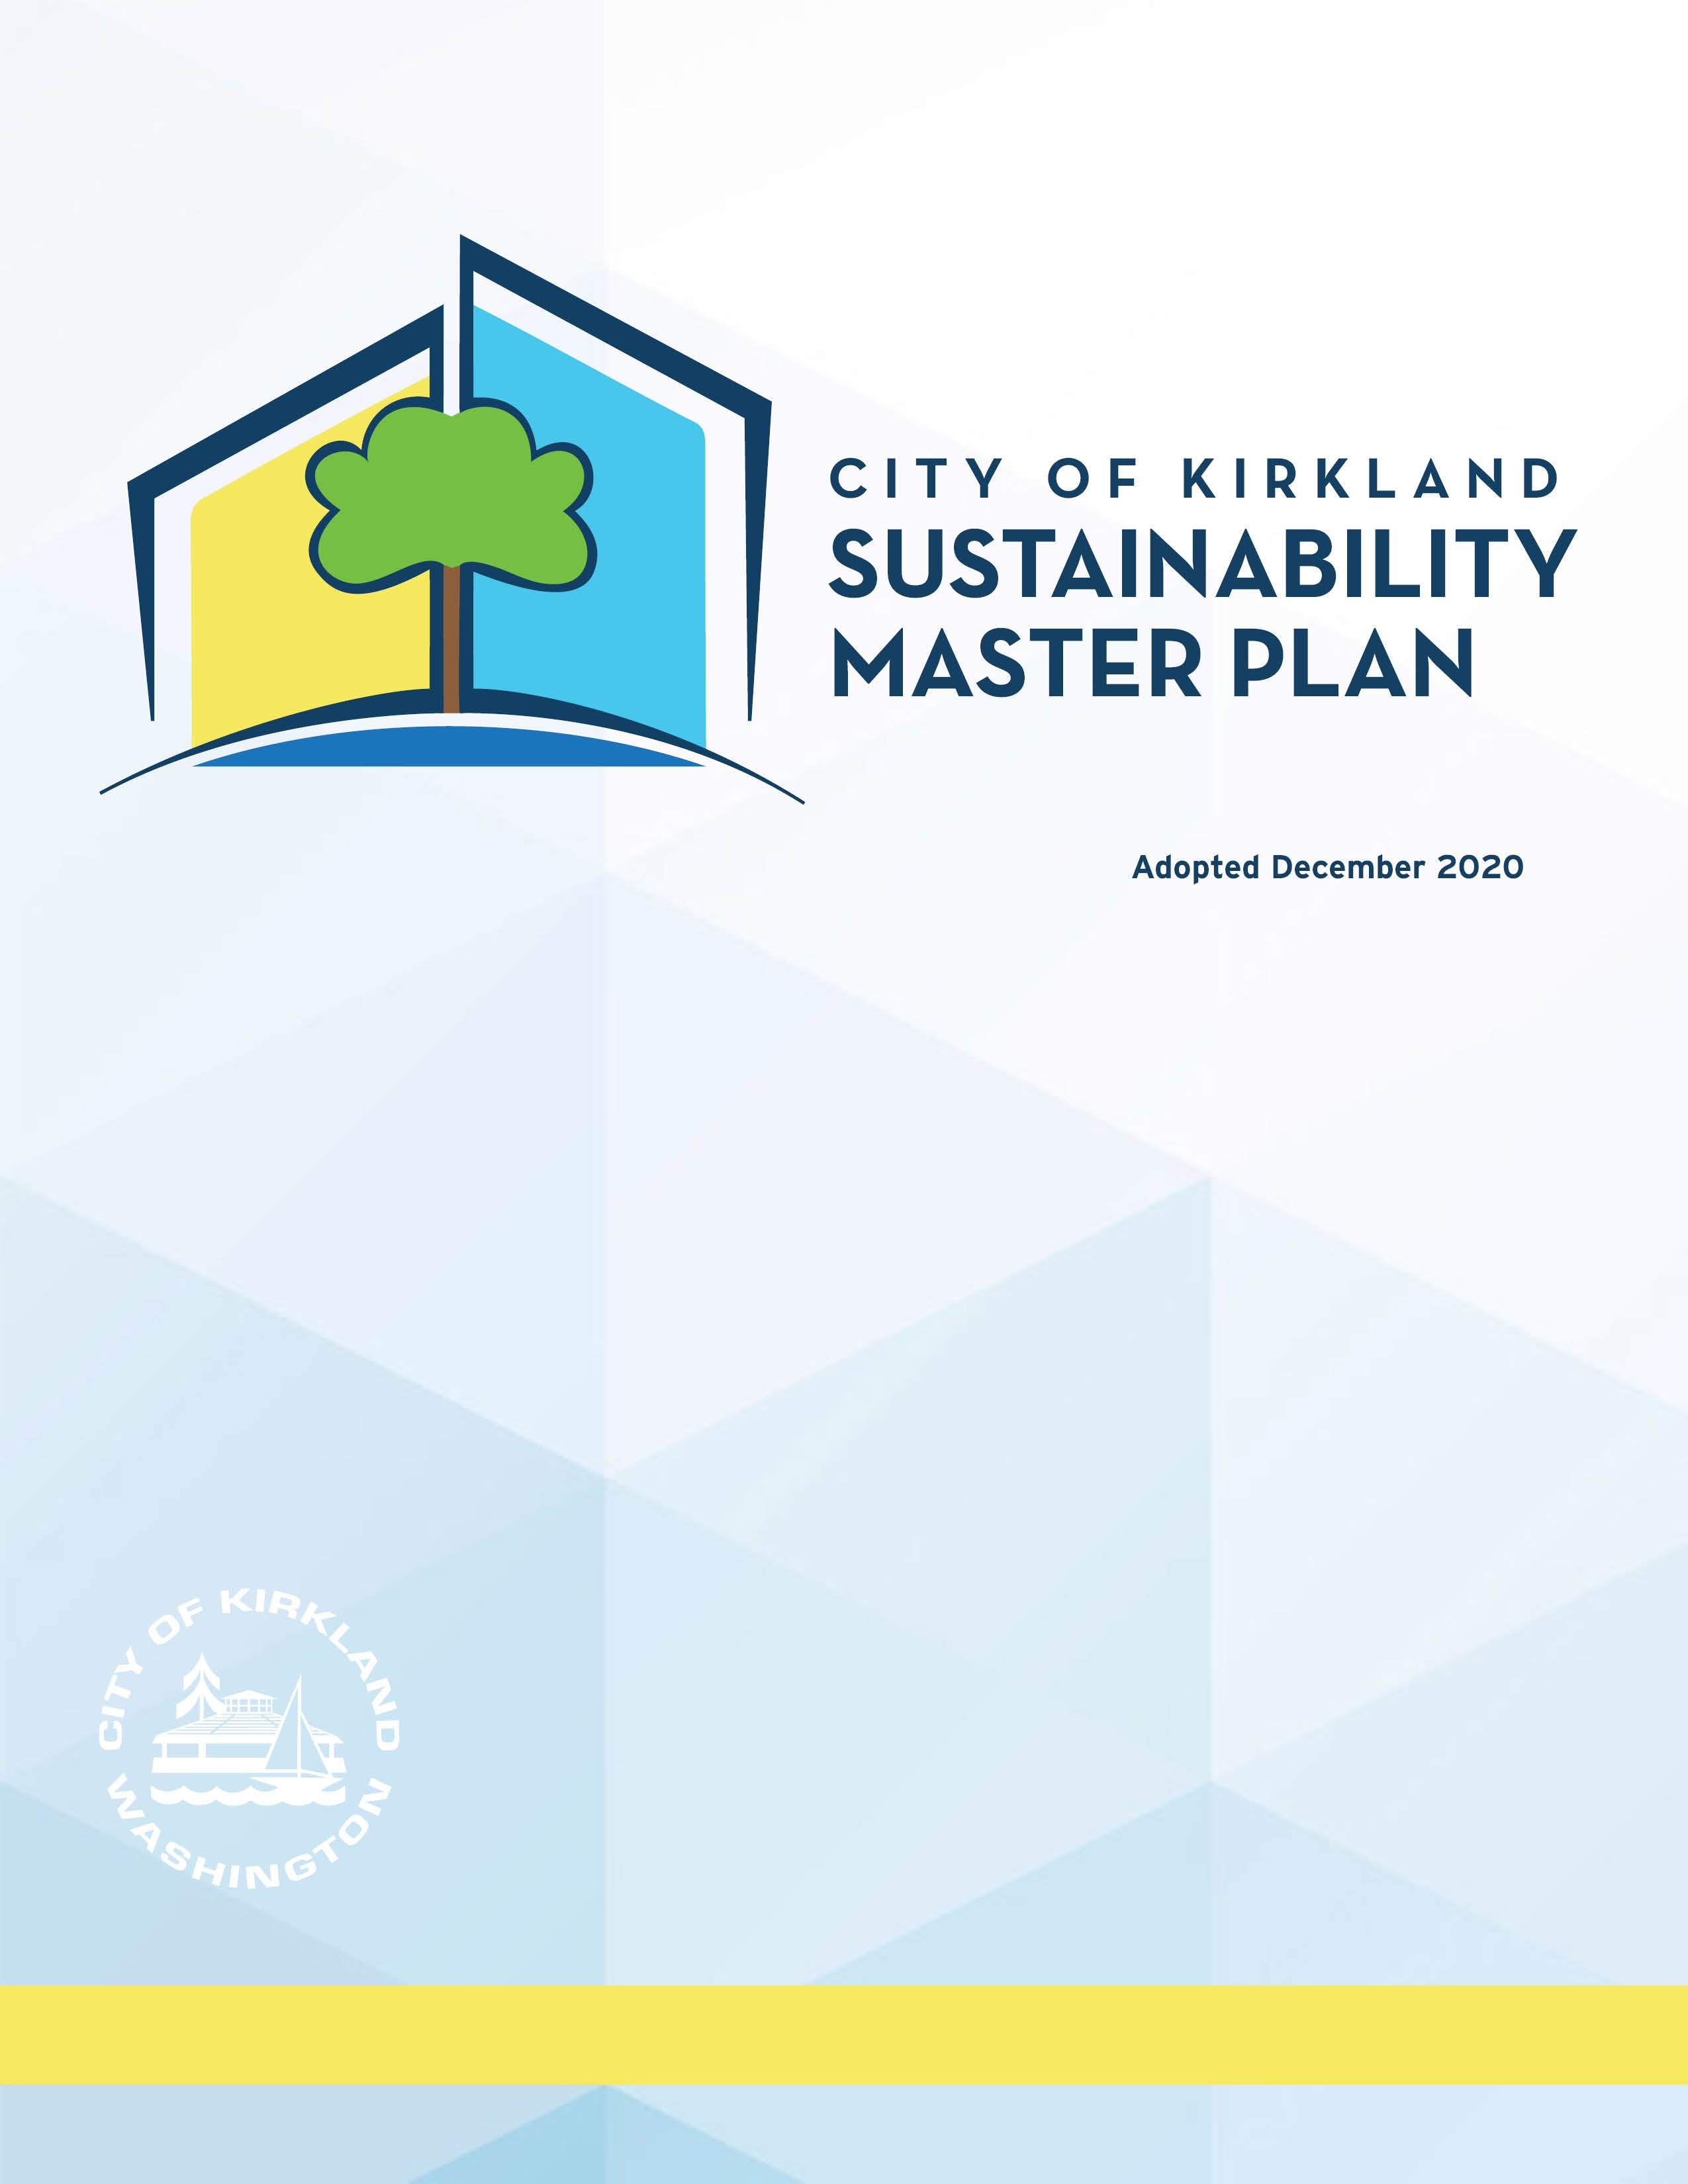 Cover of Sustainability Master Plan adopted Dec 2020